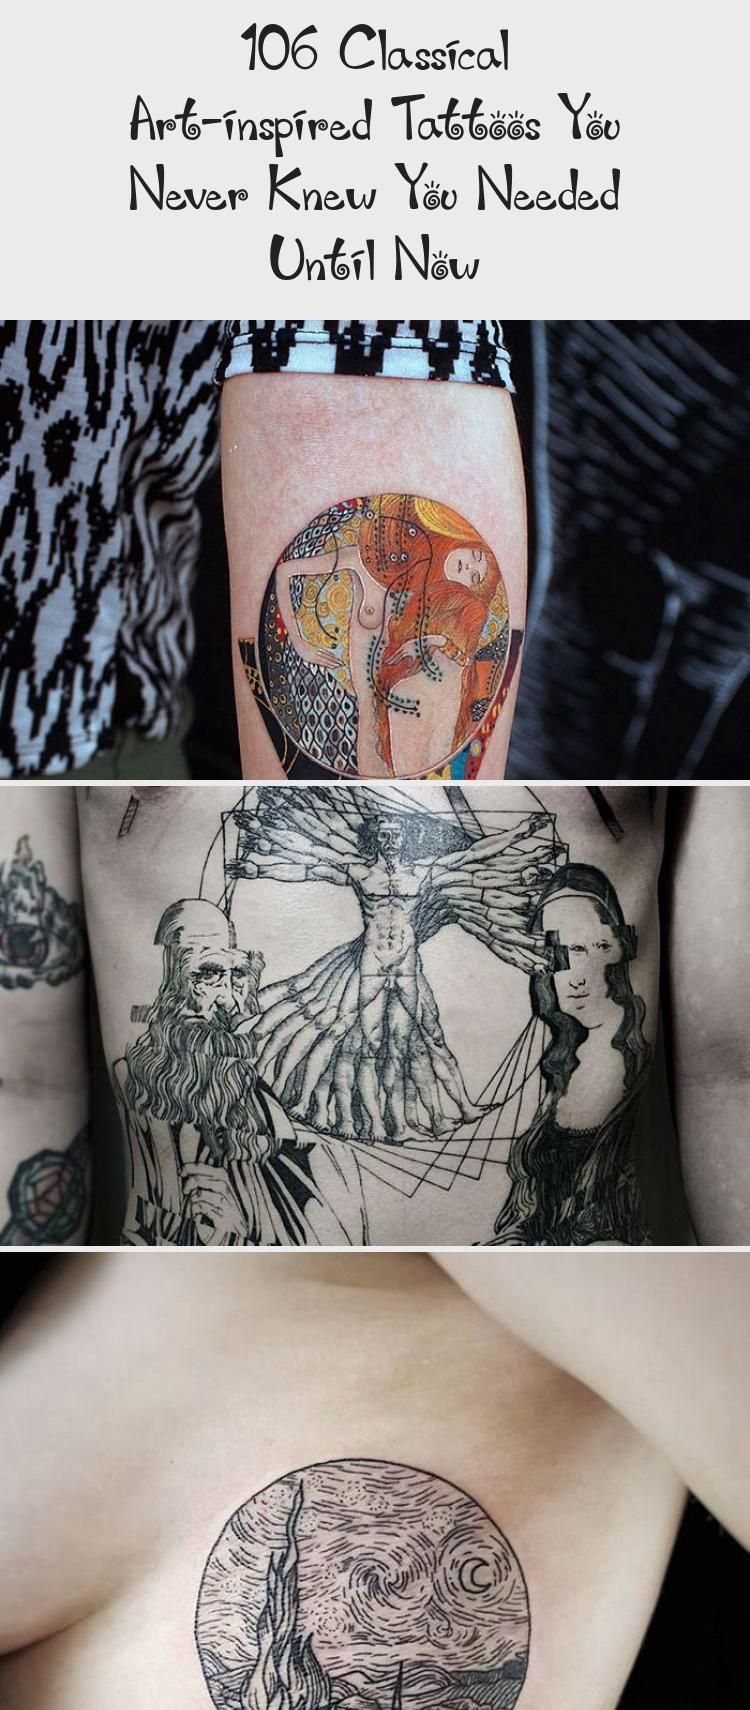 14 Classical Art Inspired Tattoos You Never Knew You Needed Until Now Bored Panda Contemporaryarttattoo Artt In 2020 Art Inspired Tattoos Tattoo You Classical Art